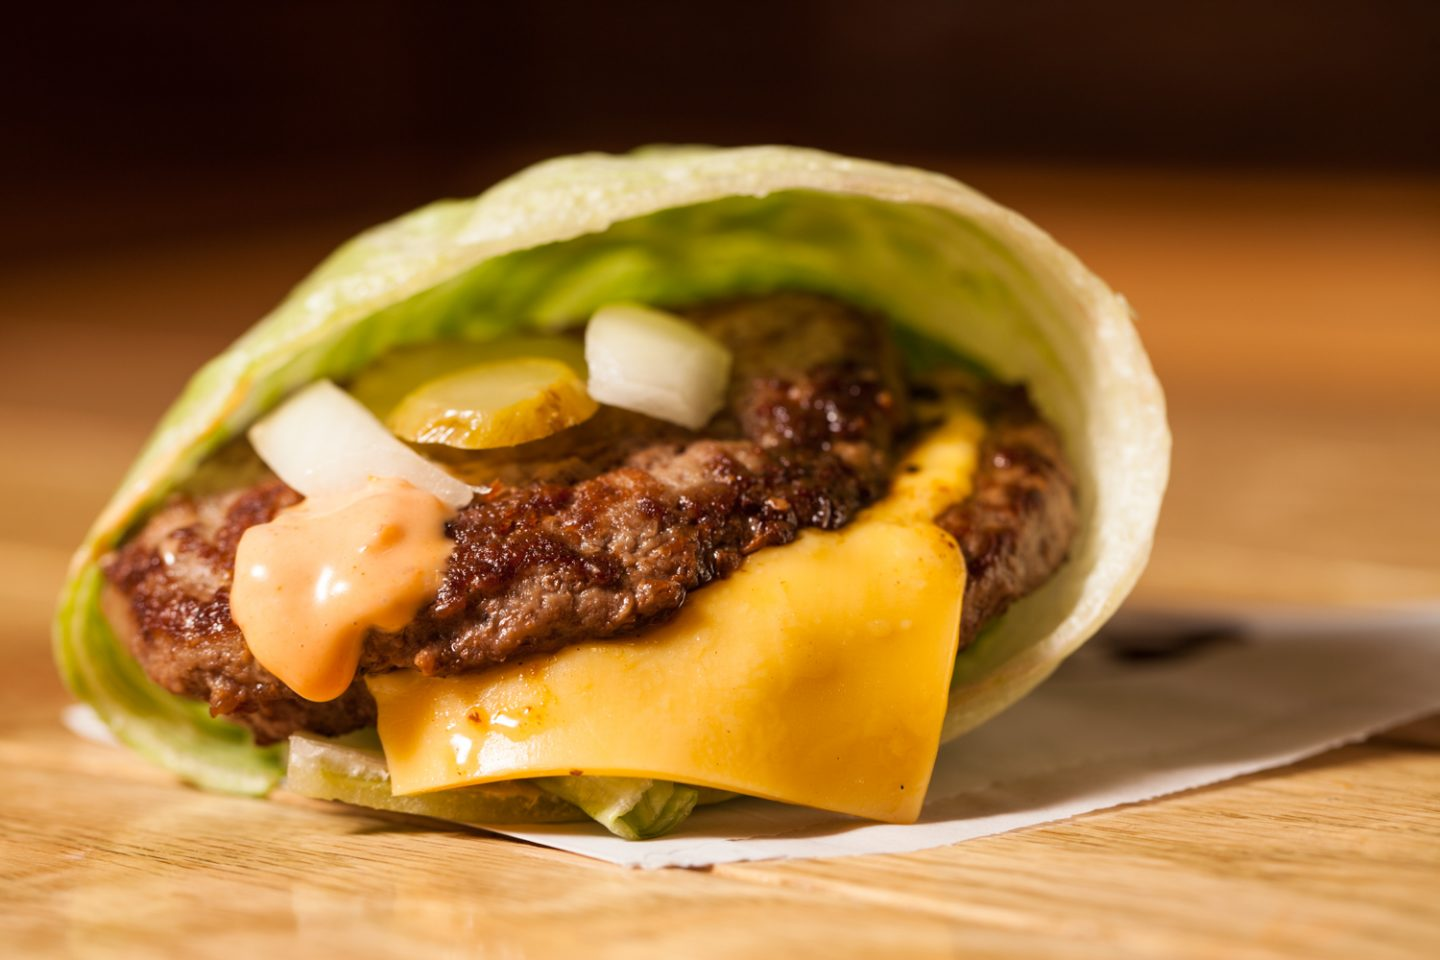 M Burger's burger wrapped in lettuce instead of a bun